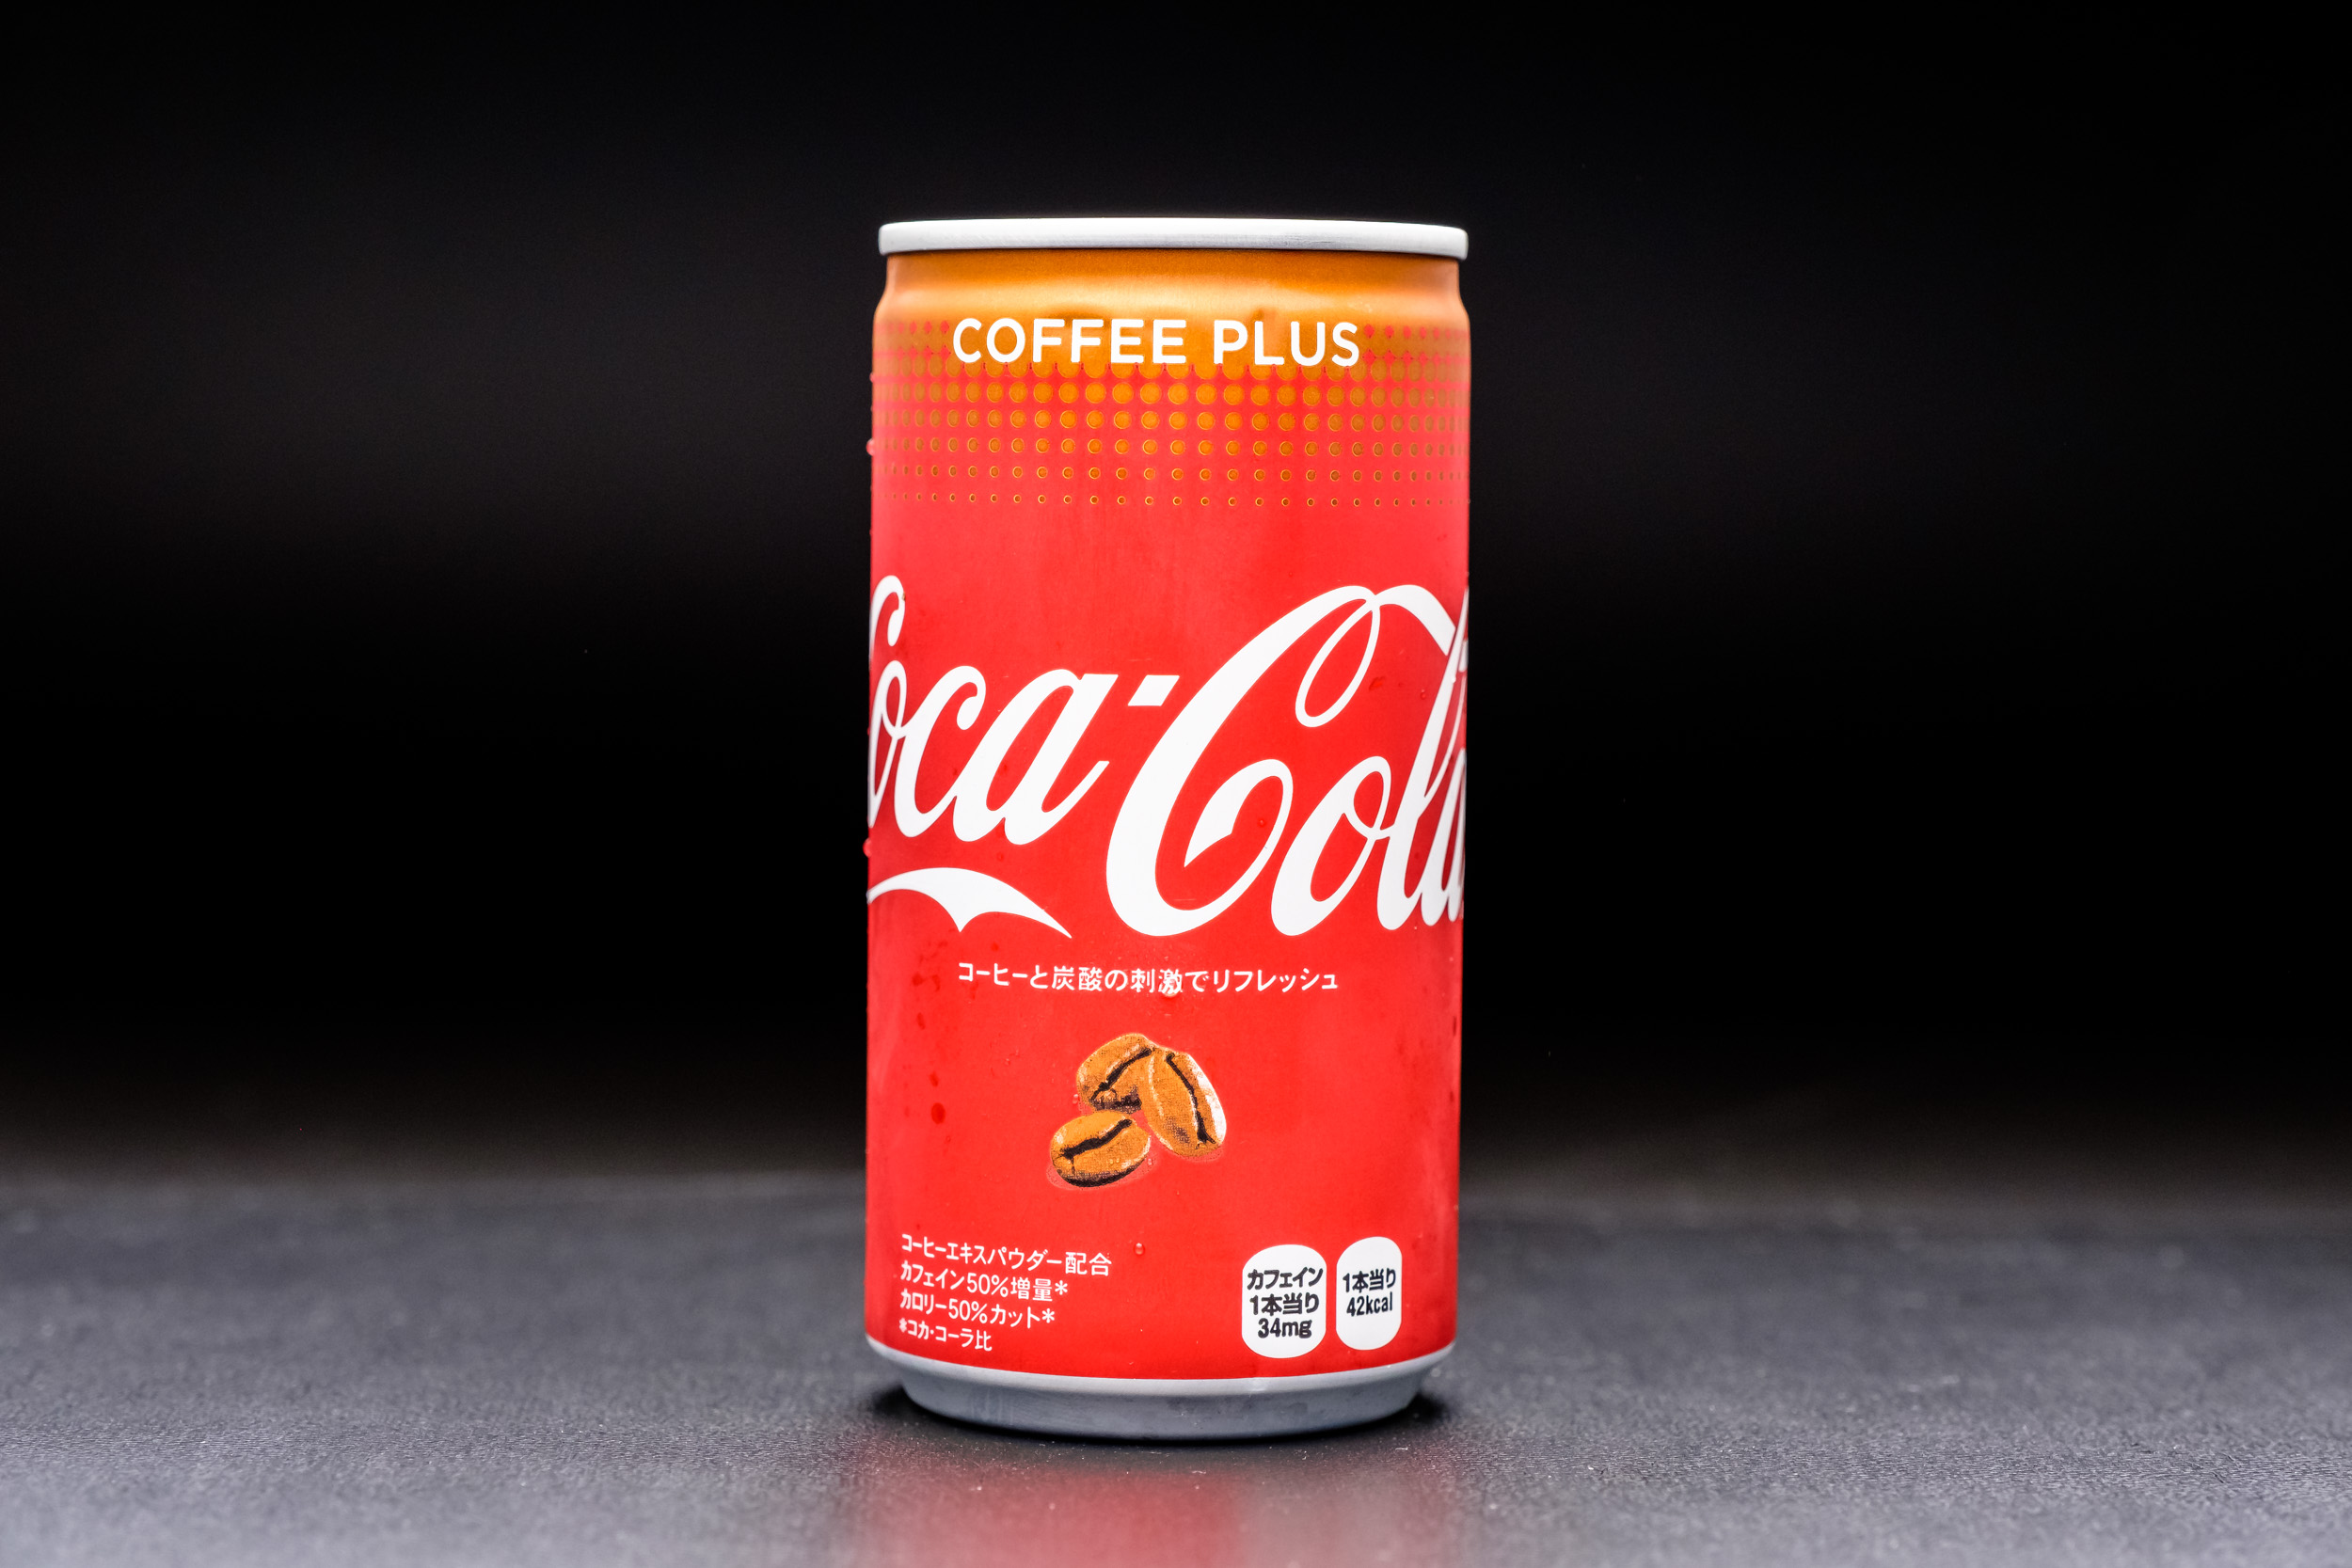 Coca-Cola Coffee Plus - notice the difference in the colour of the can